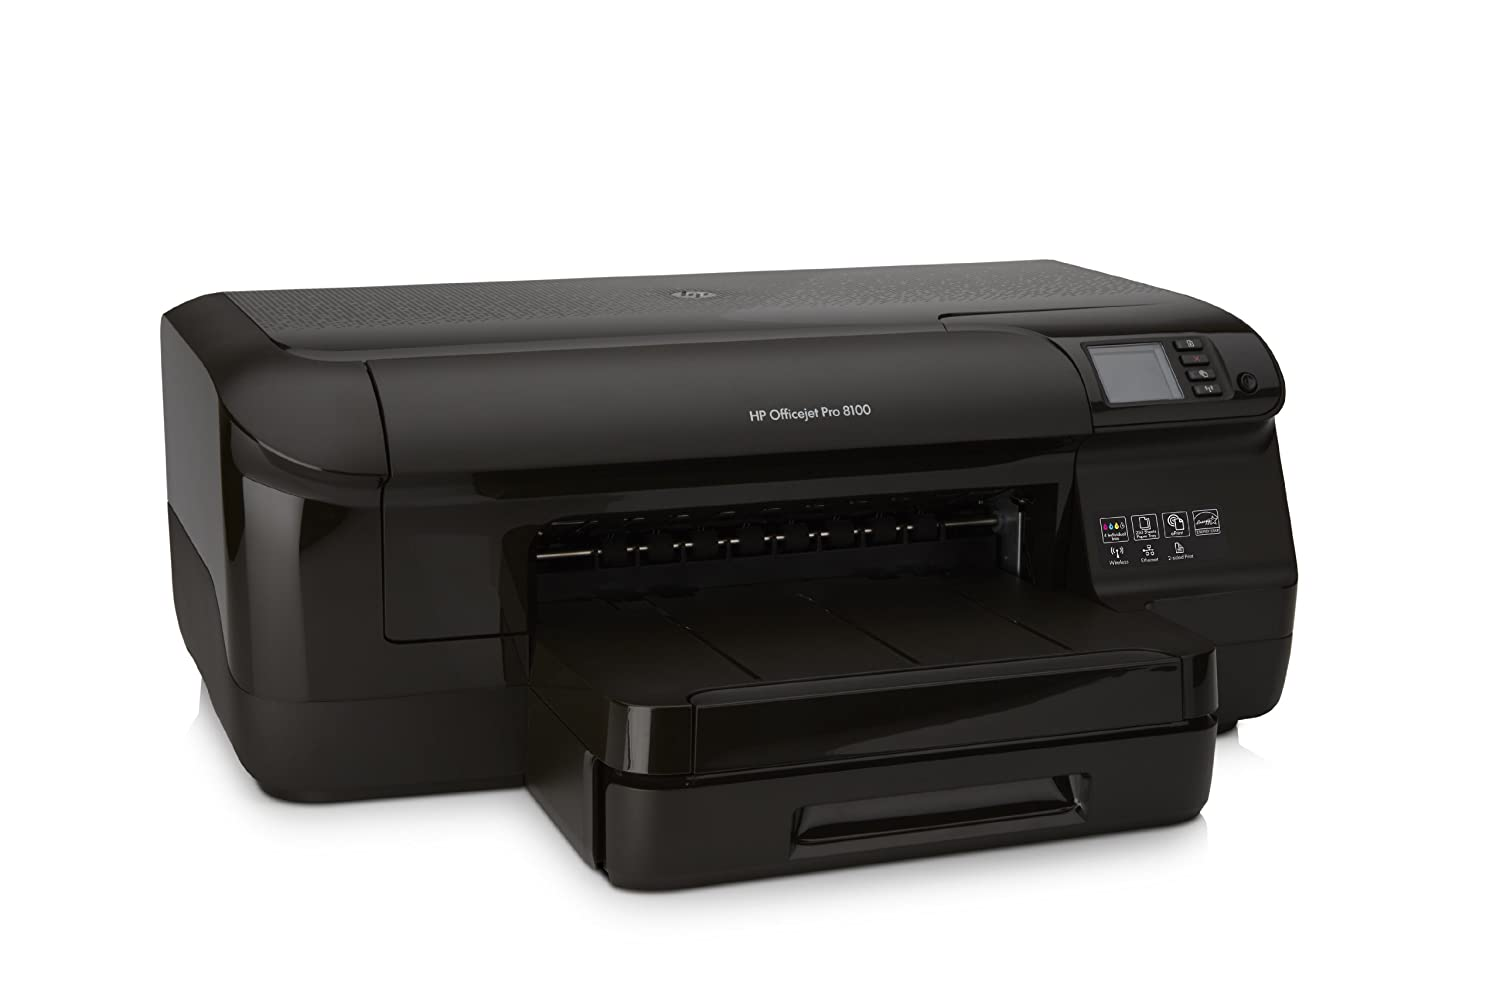 HP Officejet Pro 8100 - Impresora de tinta (B/N 35 PPM), color ...